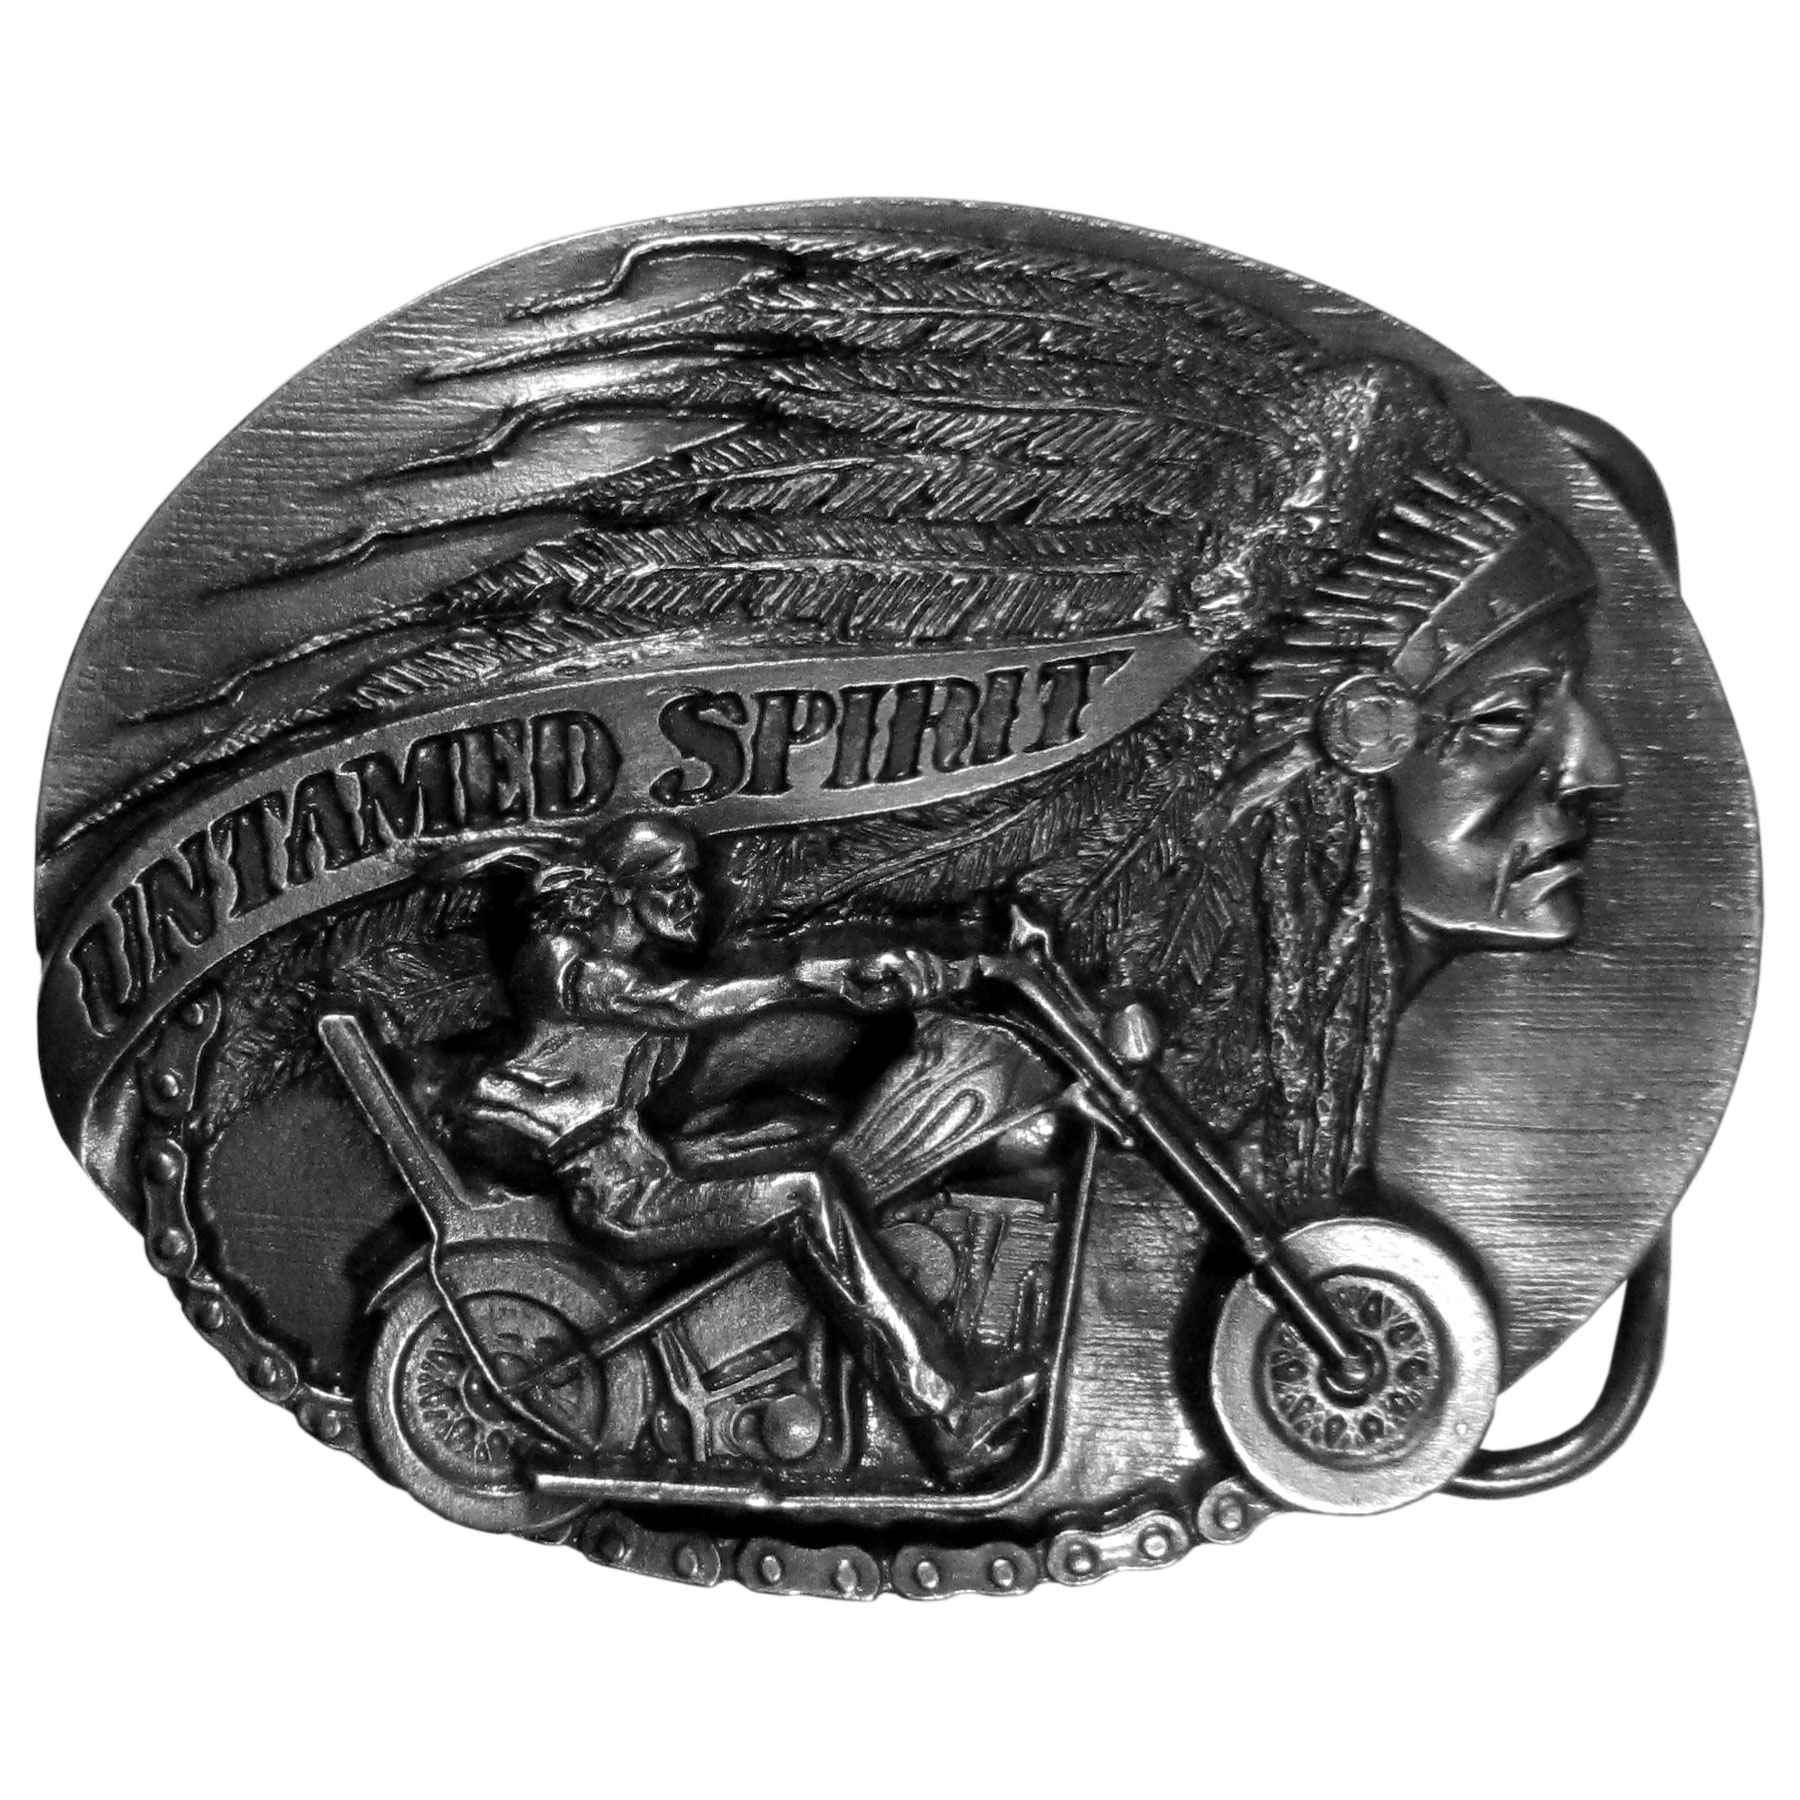 "Untamed Spirit Antiqued Belt Buckle - ""Are you an untamed spirit?  Show your wild side with this antiqued belt buckle with an """"untamed spirit"""" banner, as well as a Native American in full headress and a man on a motorcycle.  These exquisitely carved buckles are made of fully cast metal, with a standard bale that fits up to 2"""" belts."""